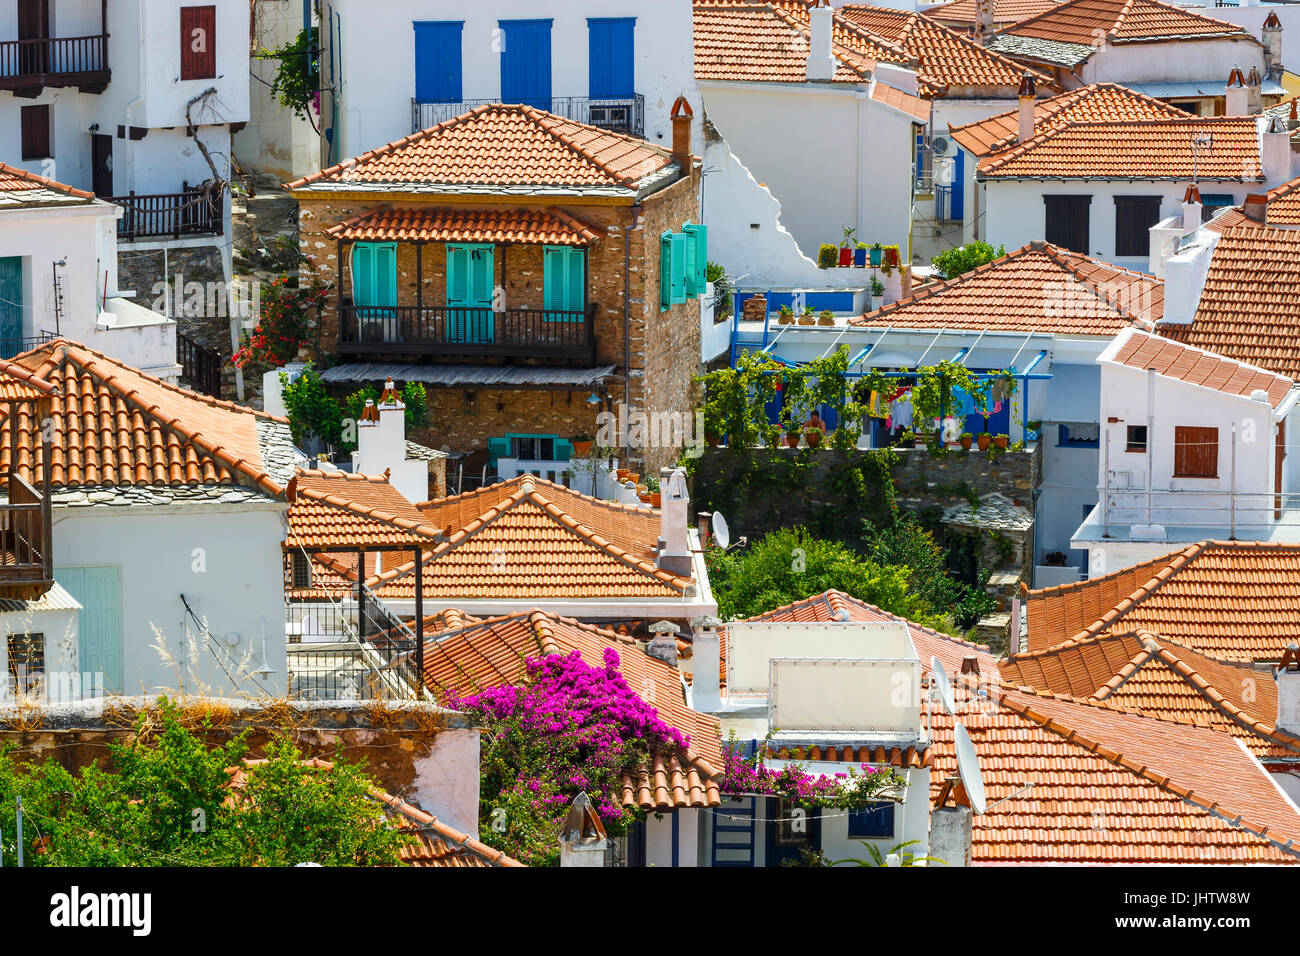 White houses with red roofs in Skopelos town, Greece. - Stock Image